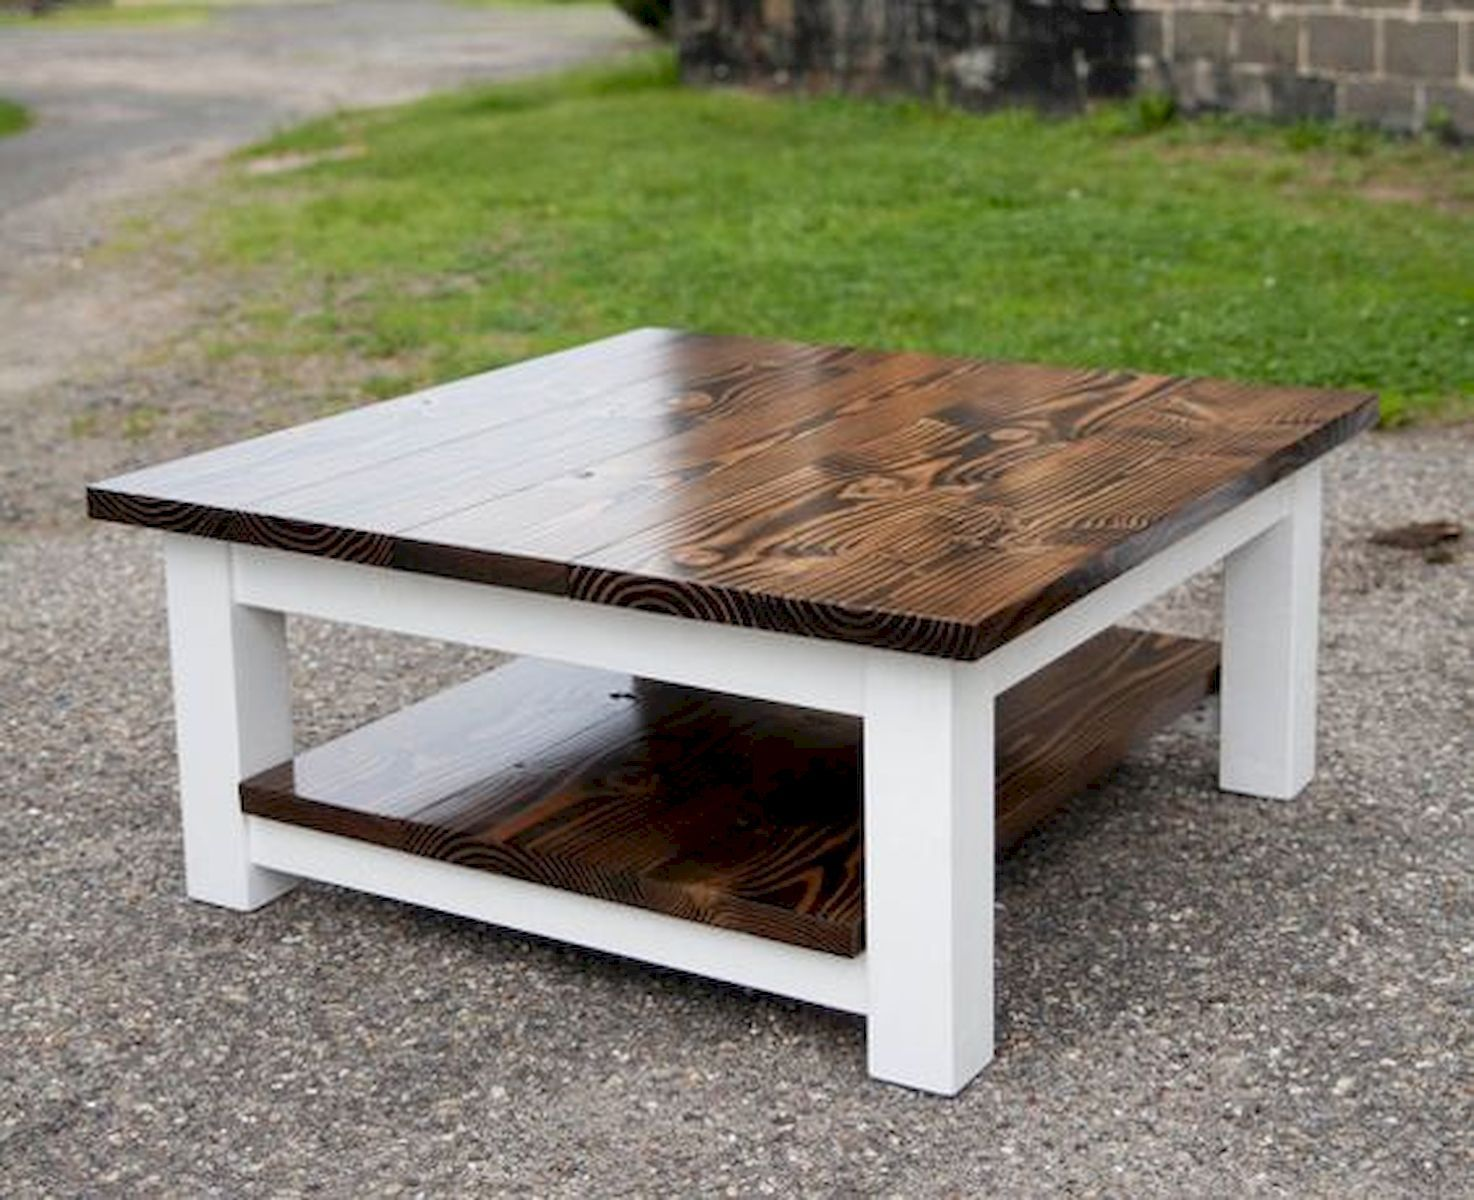 60 Fantastic Diy Projects Wood Furniture Ideas Wood Farmhouse Coffee Table Coffee Table Farmhouse Diy Coffee Table